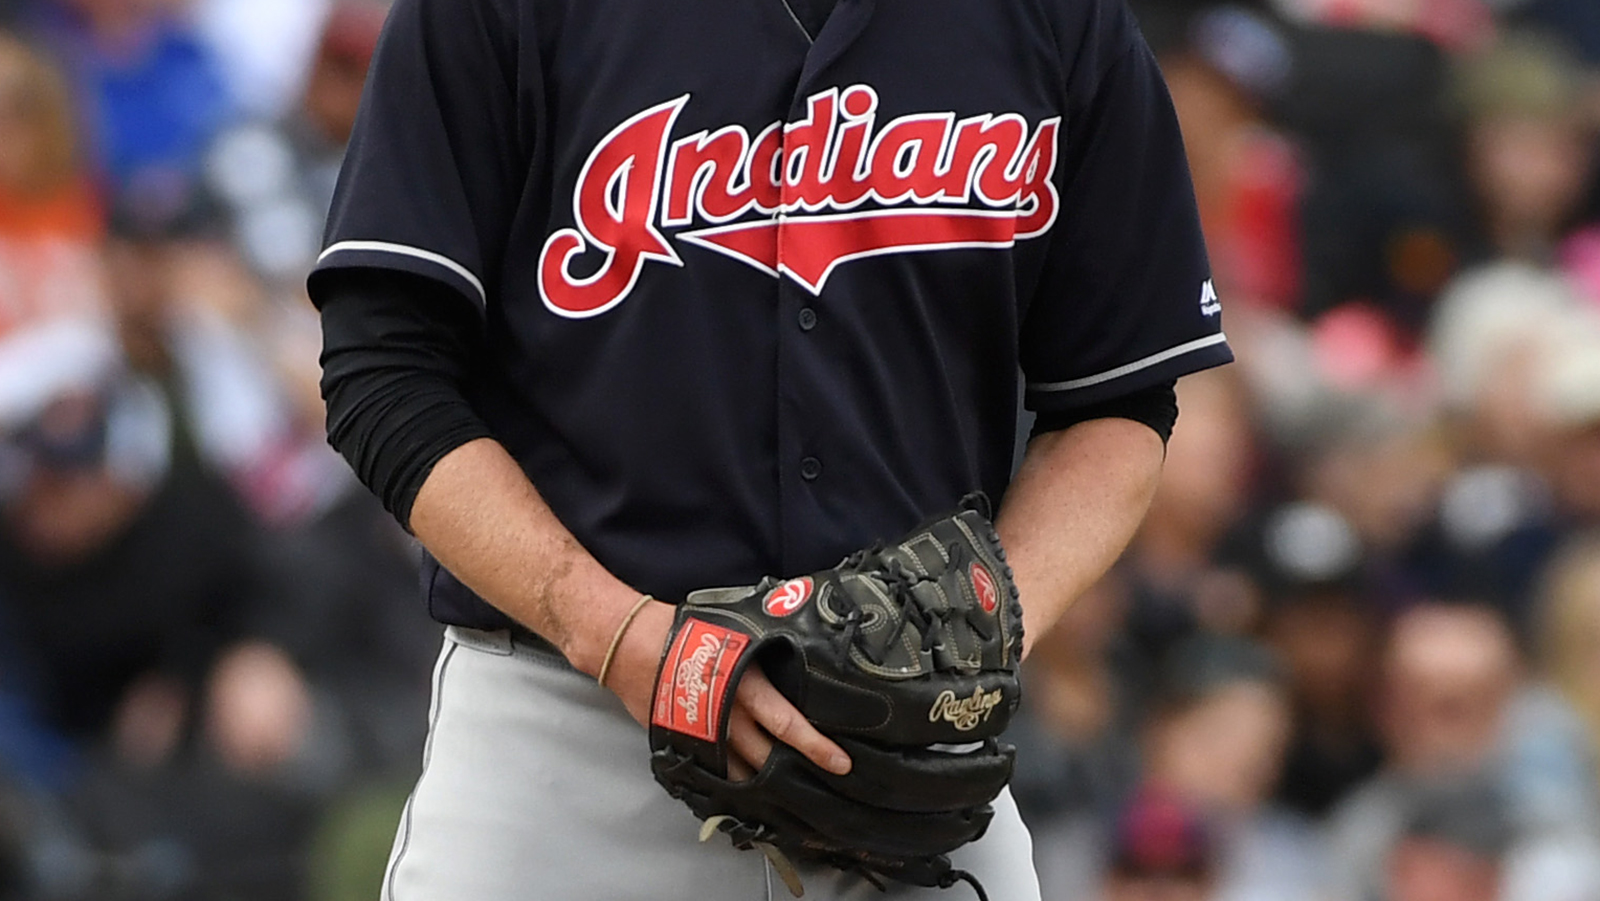 Cleveland Indians manager says it's time to change the team name